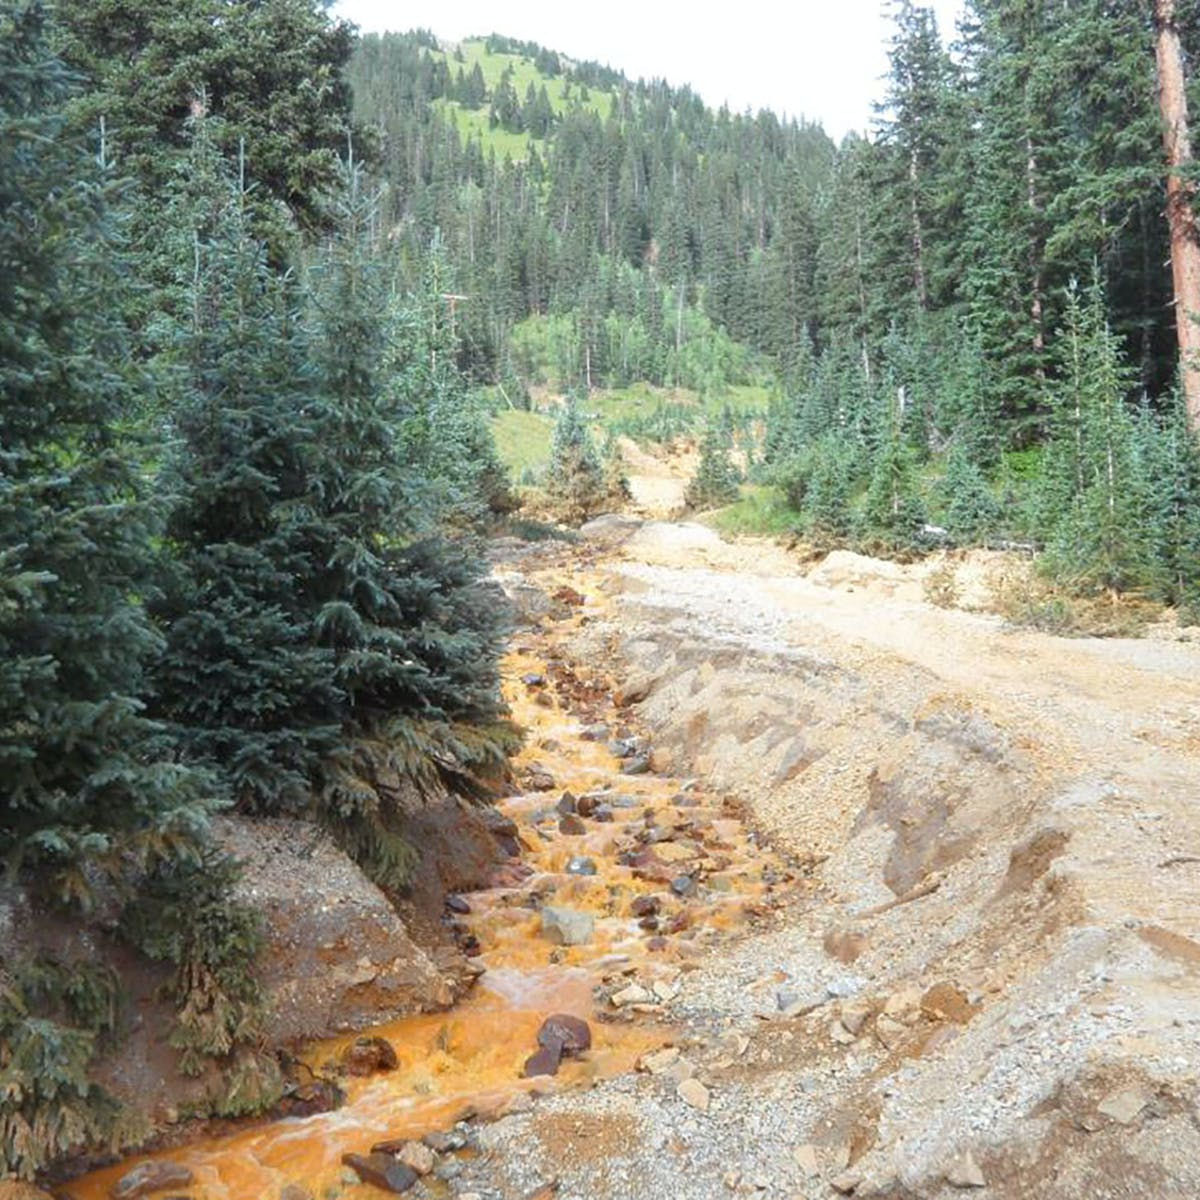 Canary in the Gold King Mine: legacy of abandoned mines means more